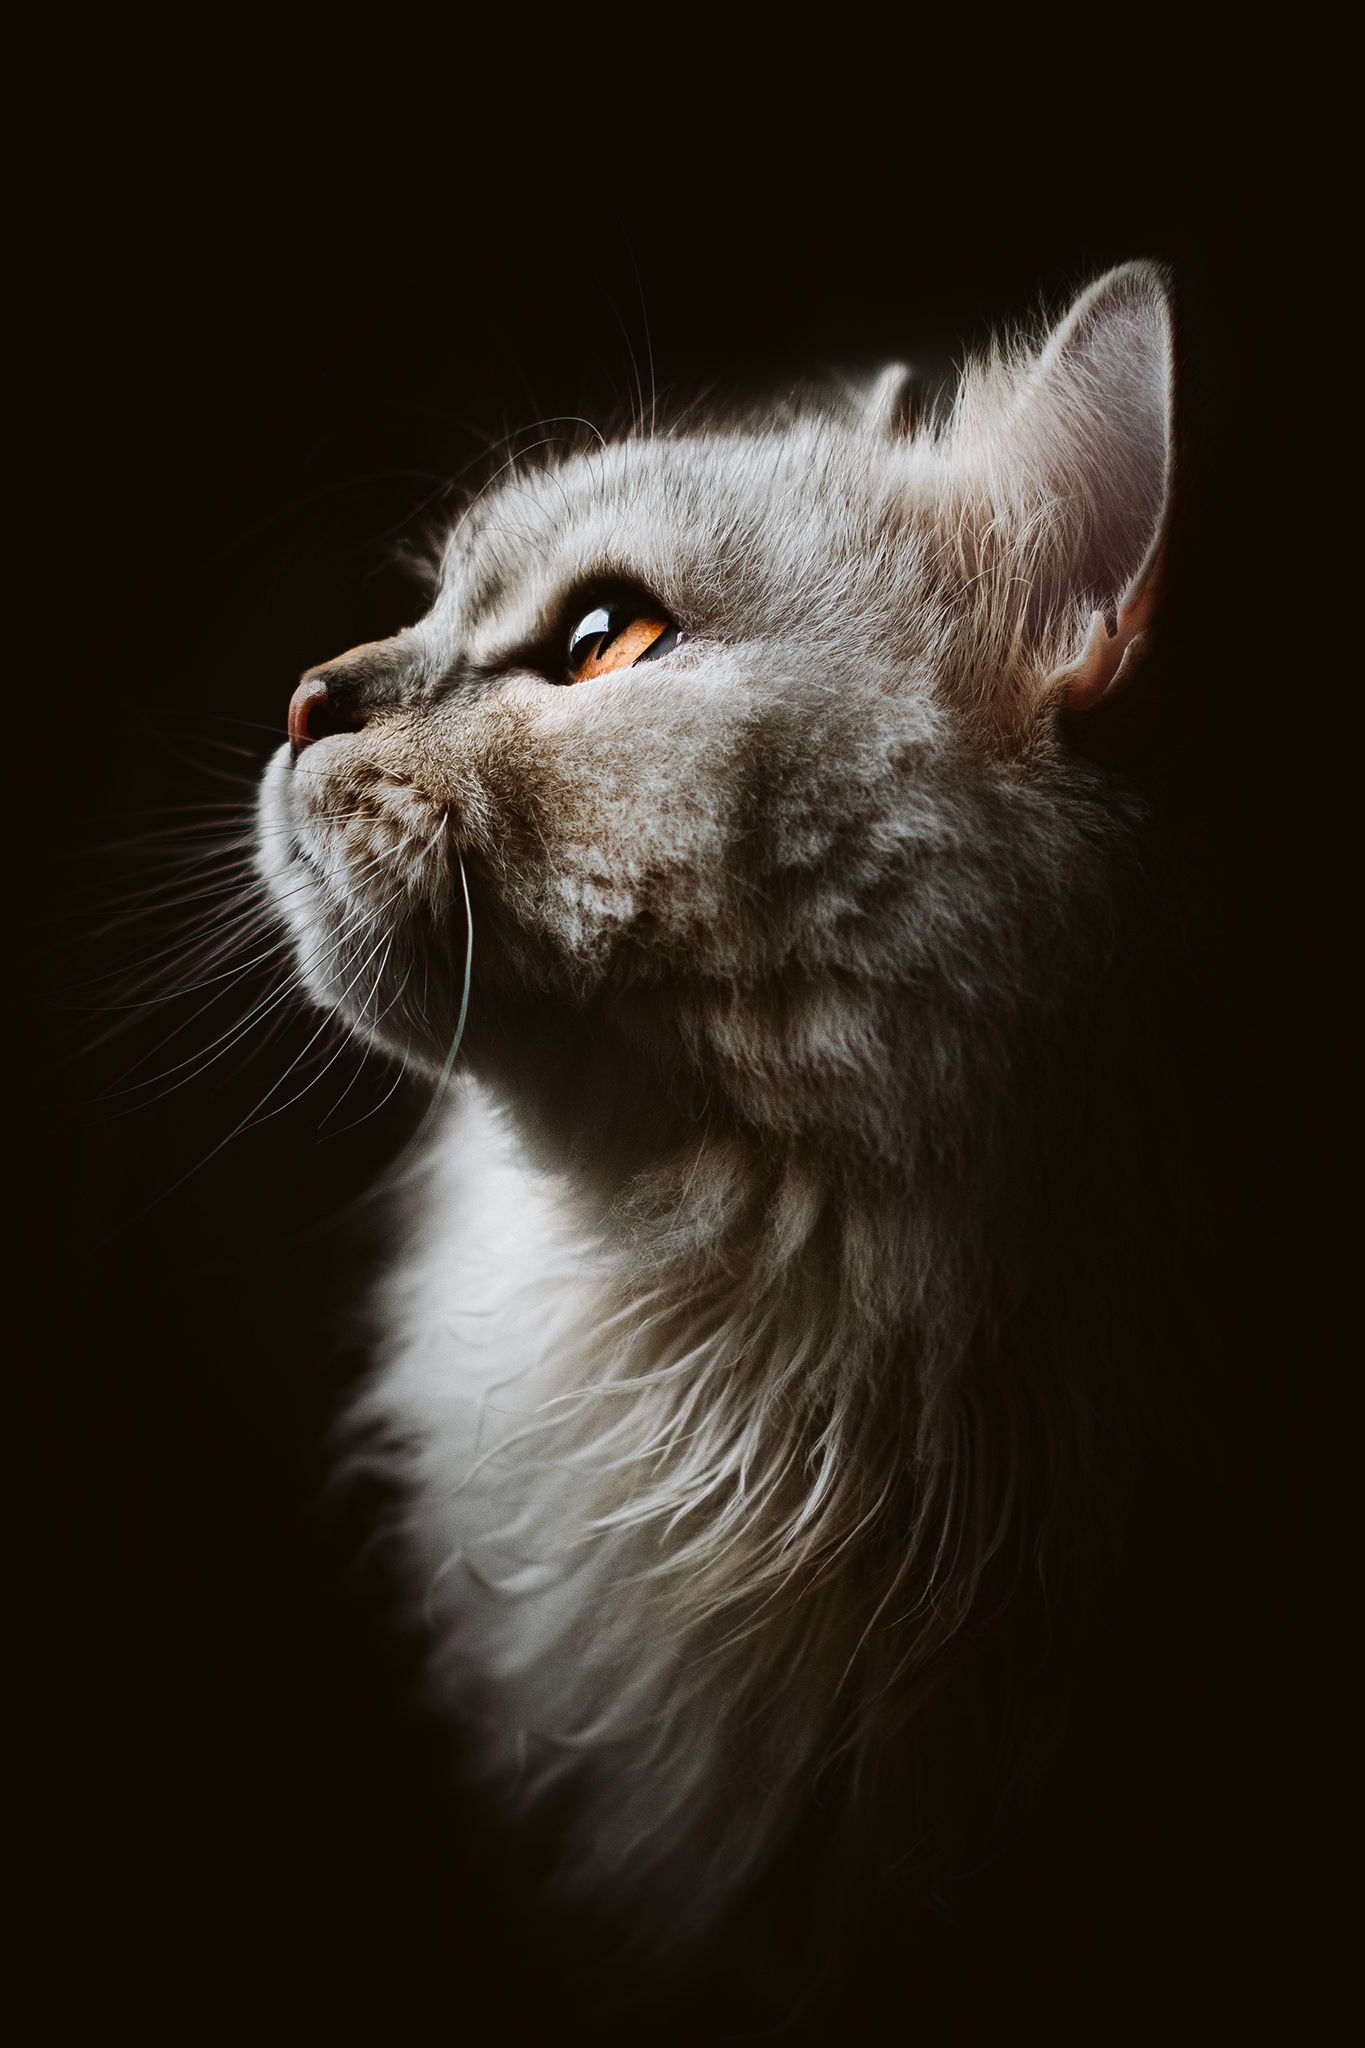 a majestic cat looks into the light